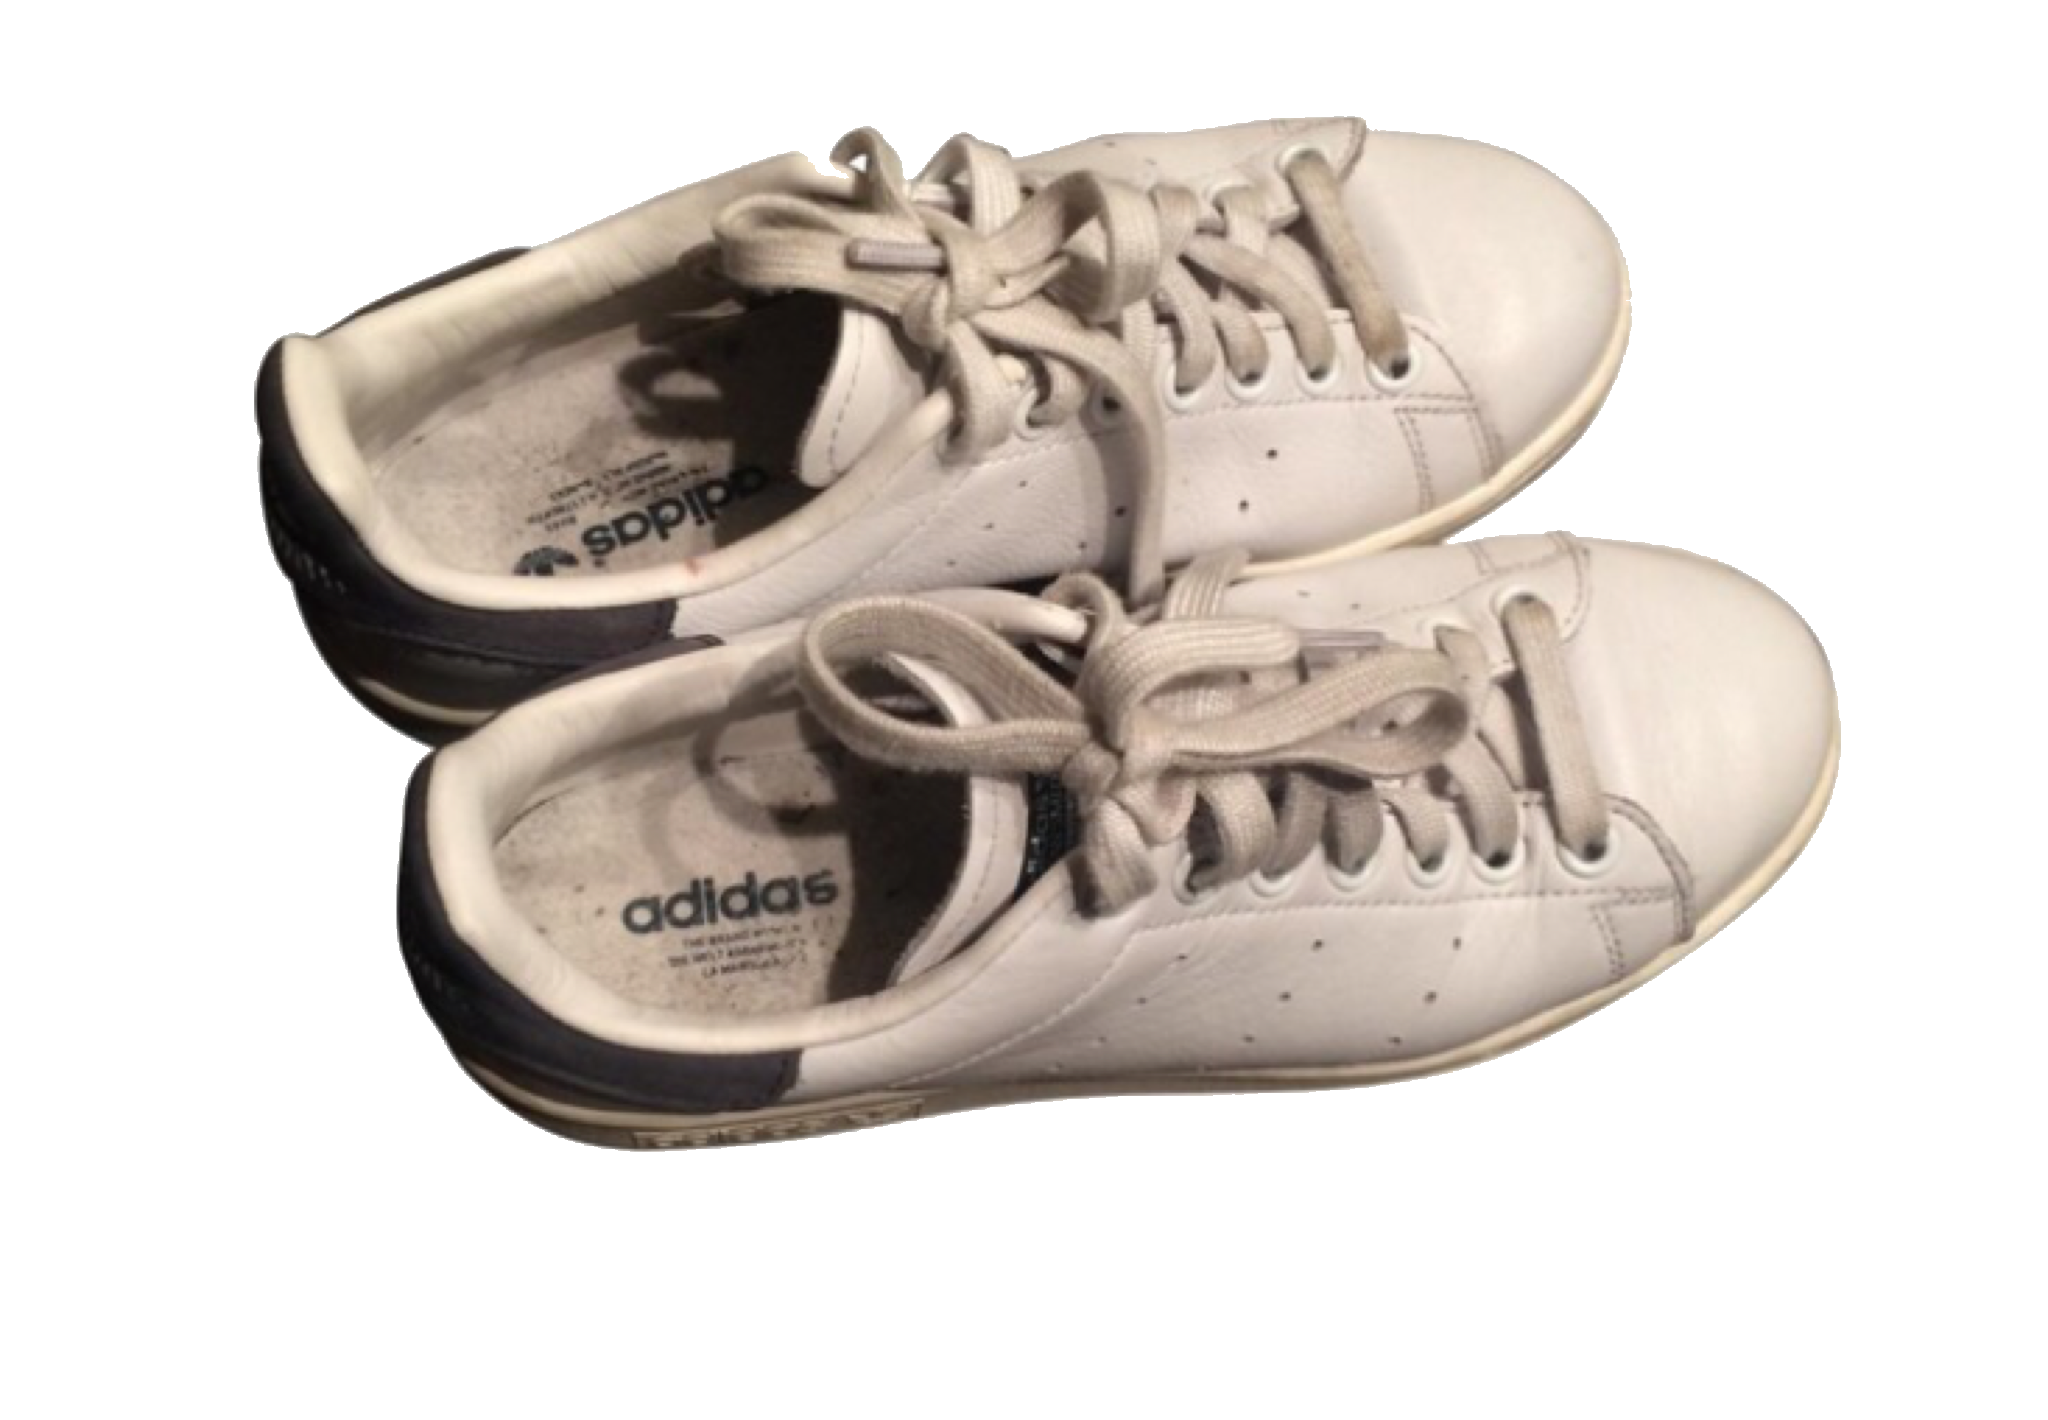 New Trainers | Donovan Mood Board in 2019 | Adidas shoes